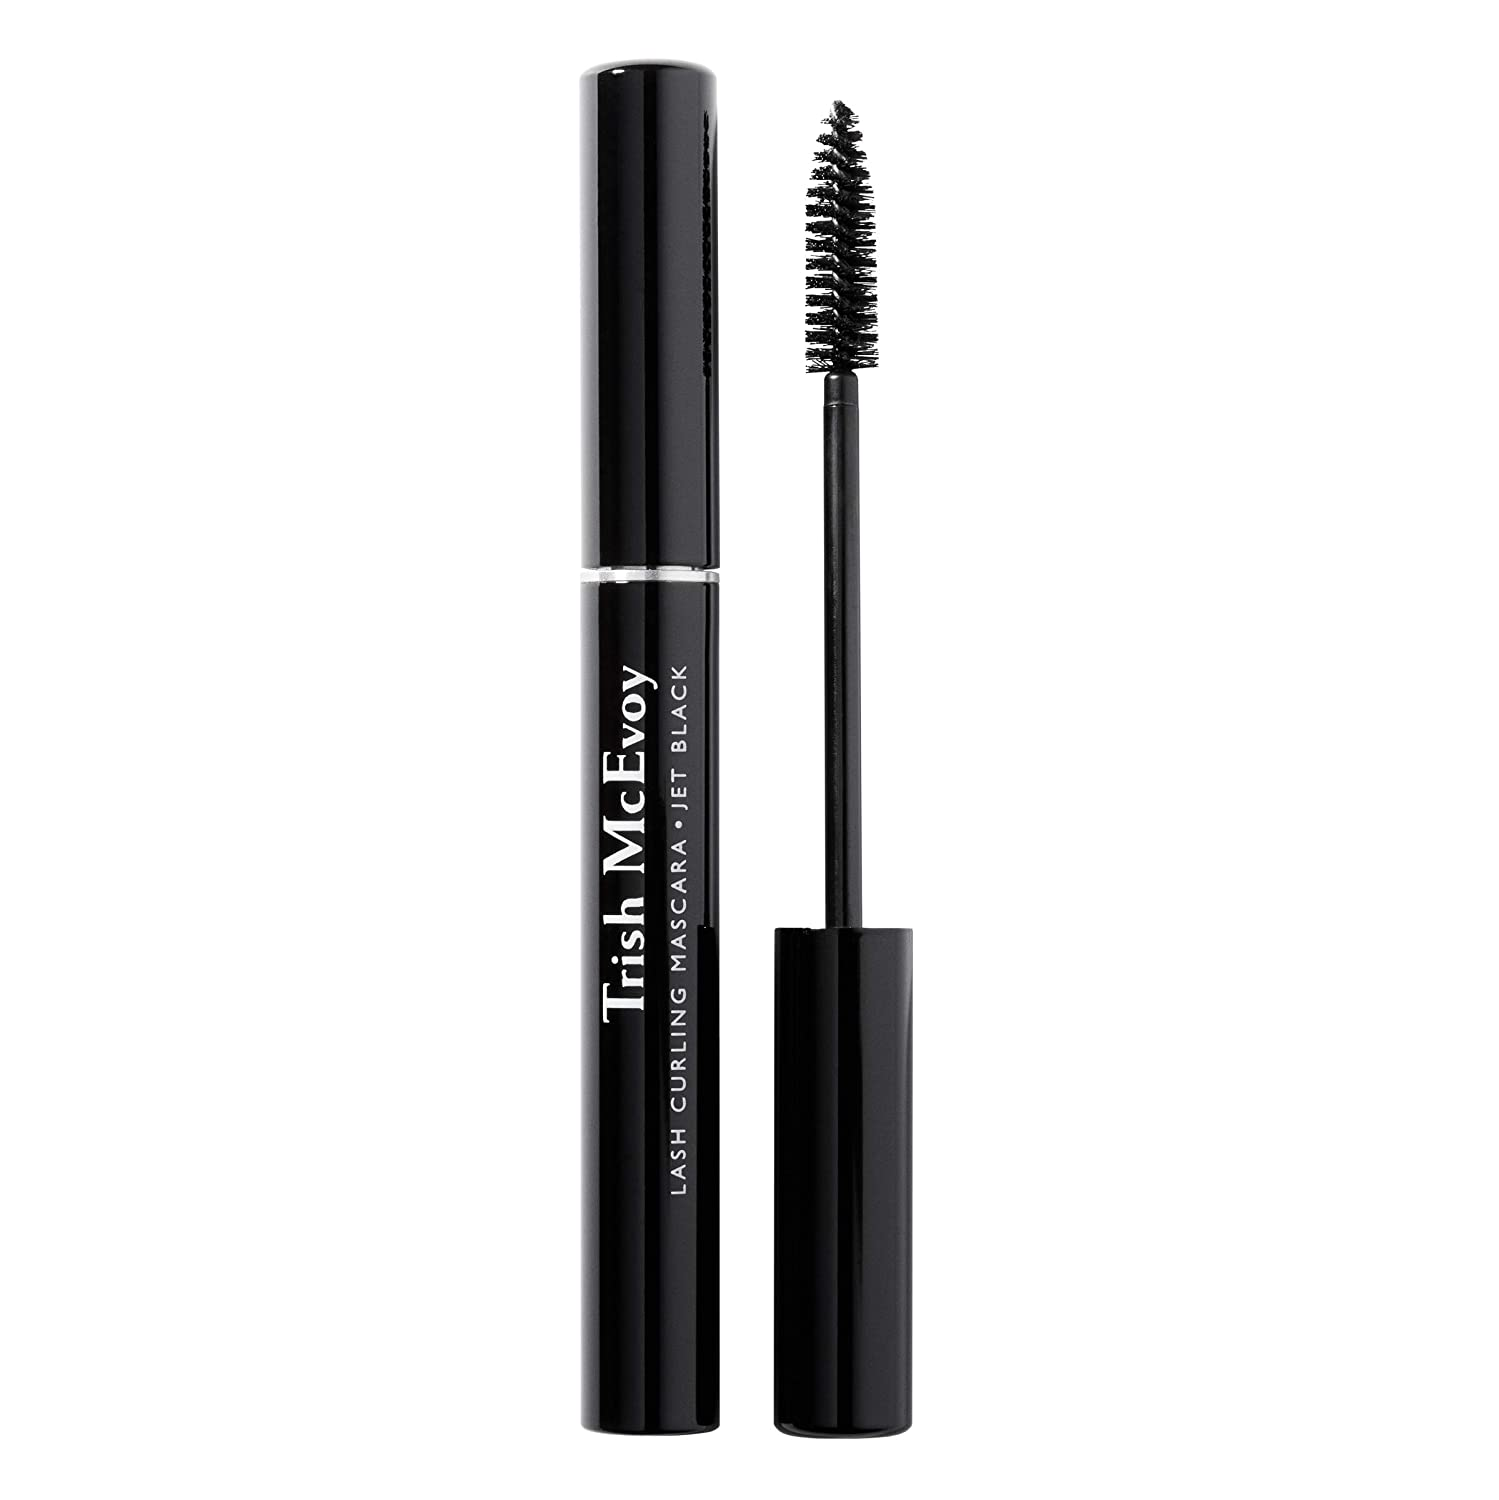 Trish McEvoy Lash Curling Mascara in Jet Black